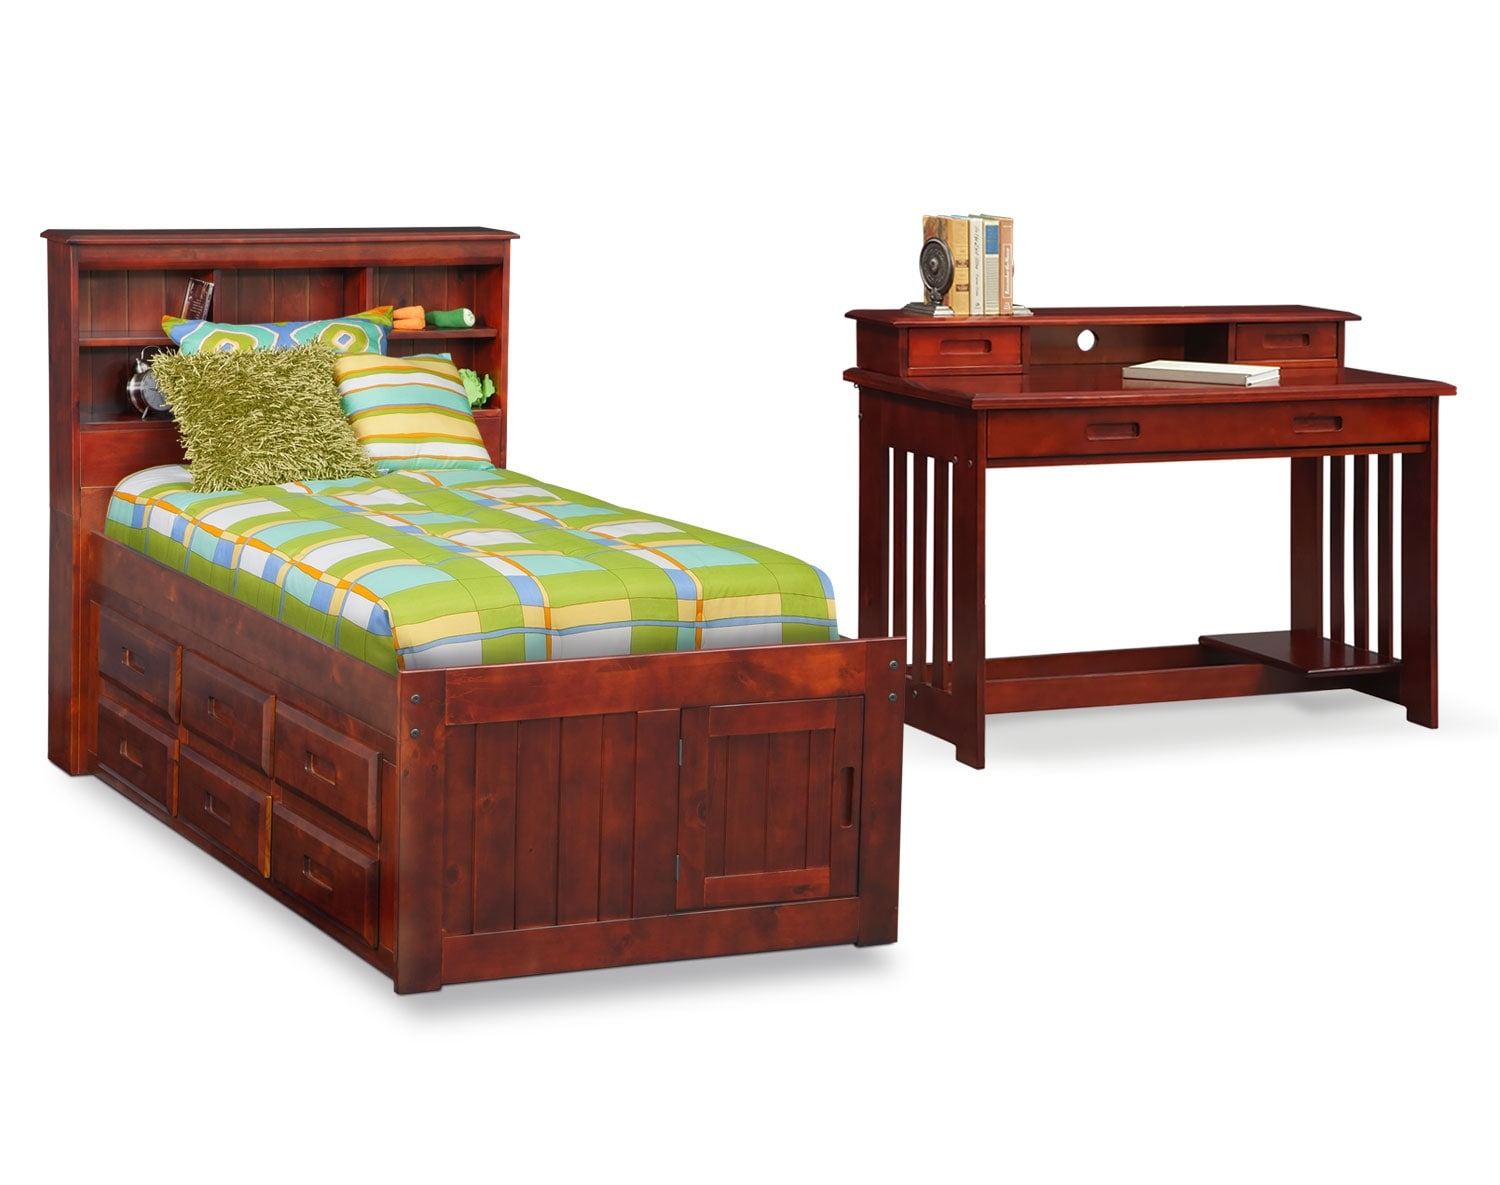 The Ranger Merlot Bookcase Bed Collection